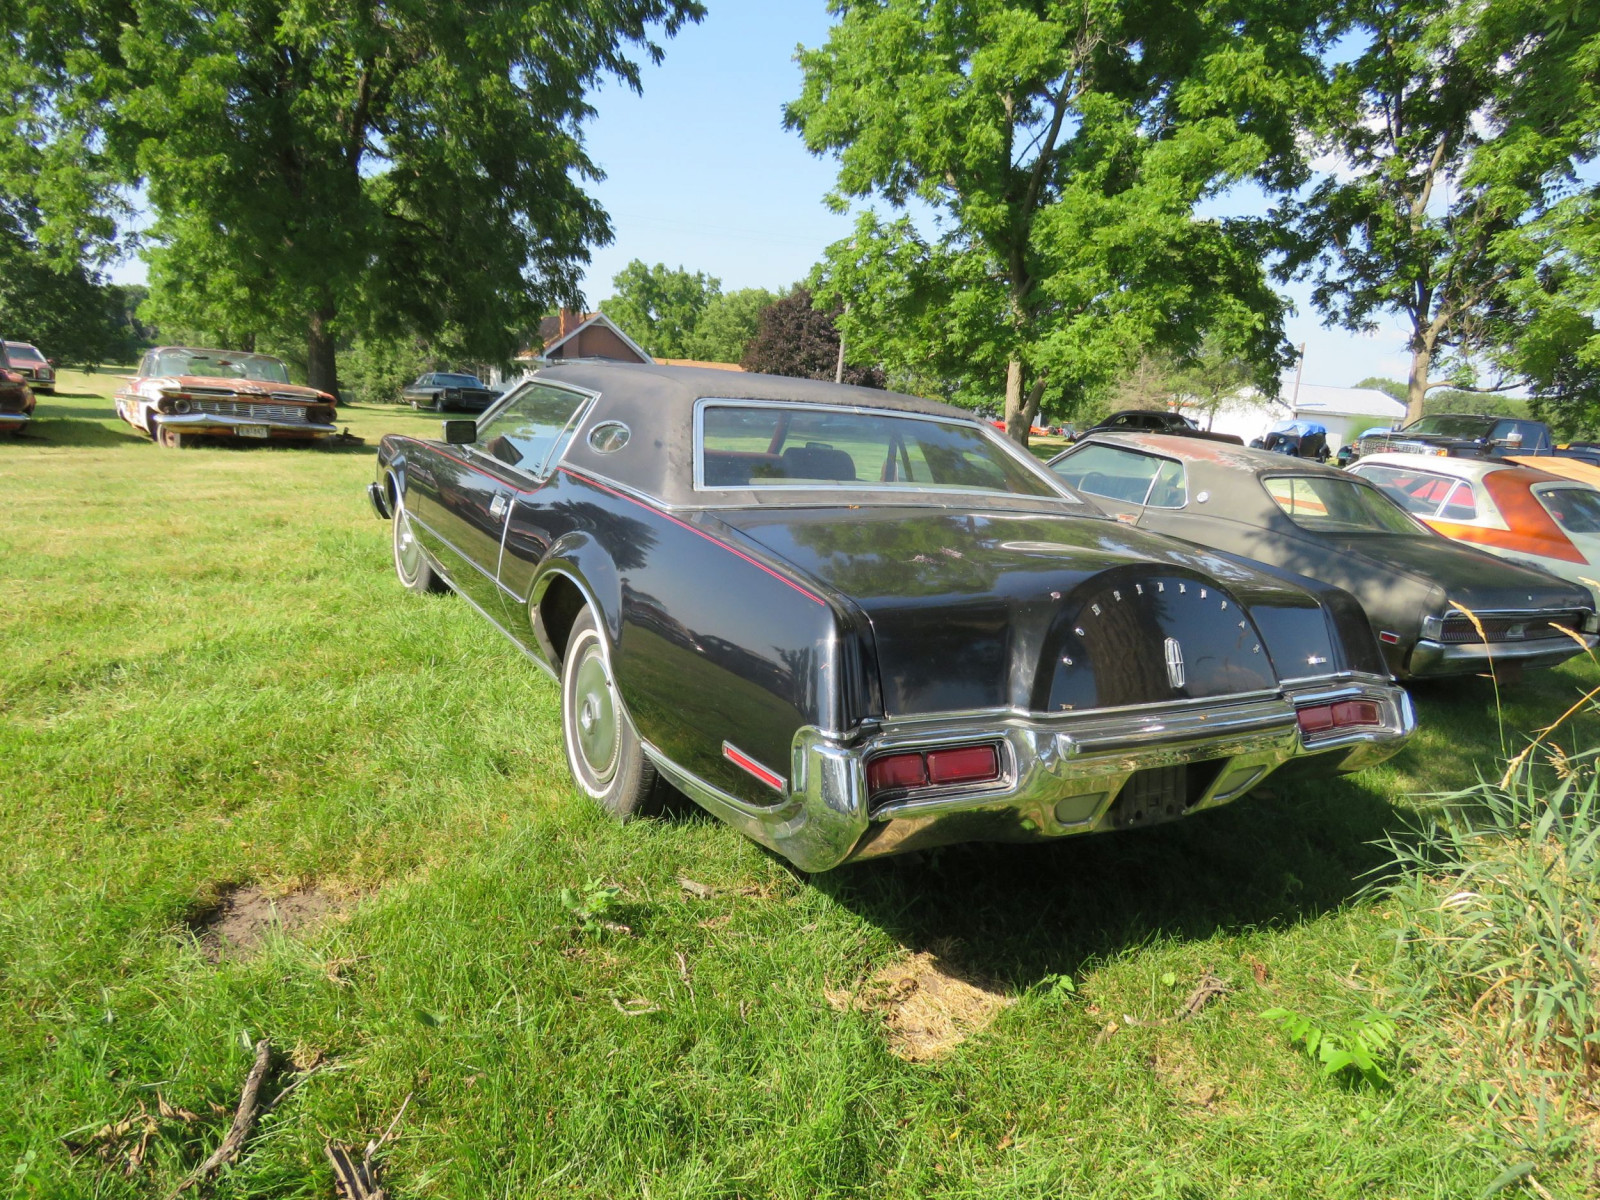 1973 Lincoln Continental Cartier Coupe - Image 5